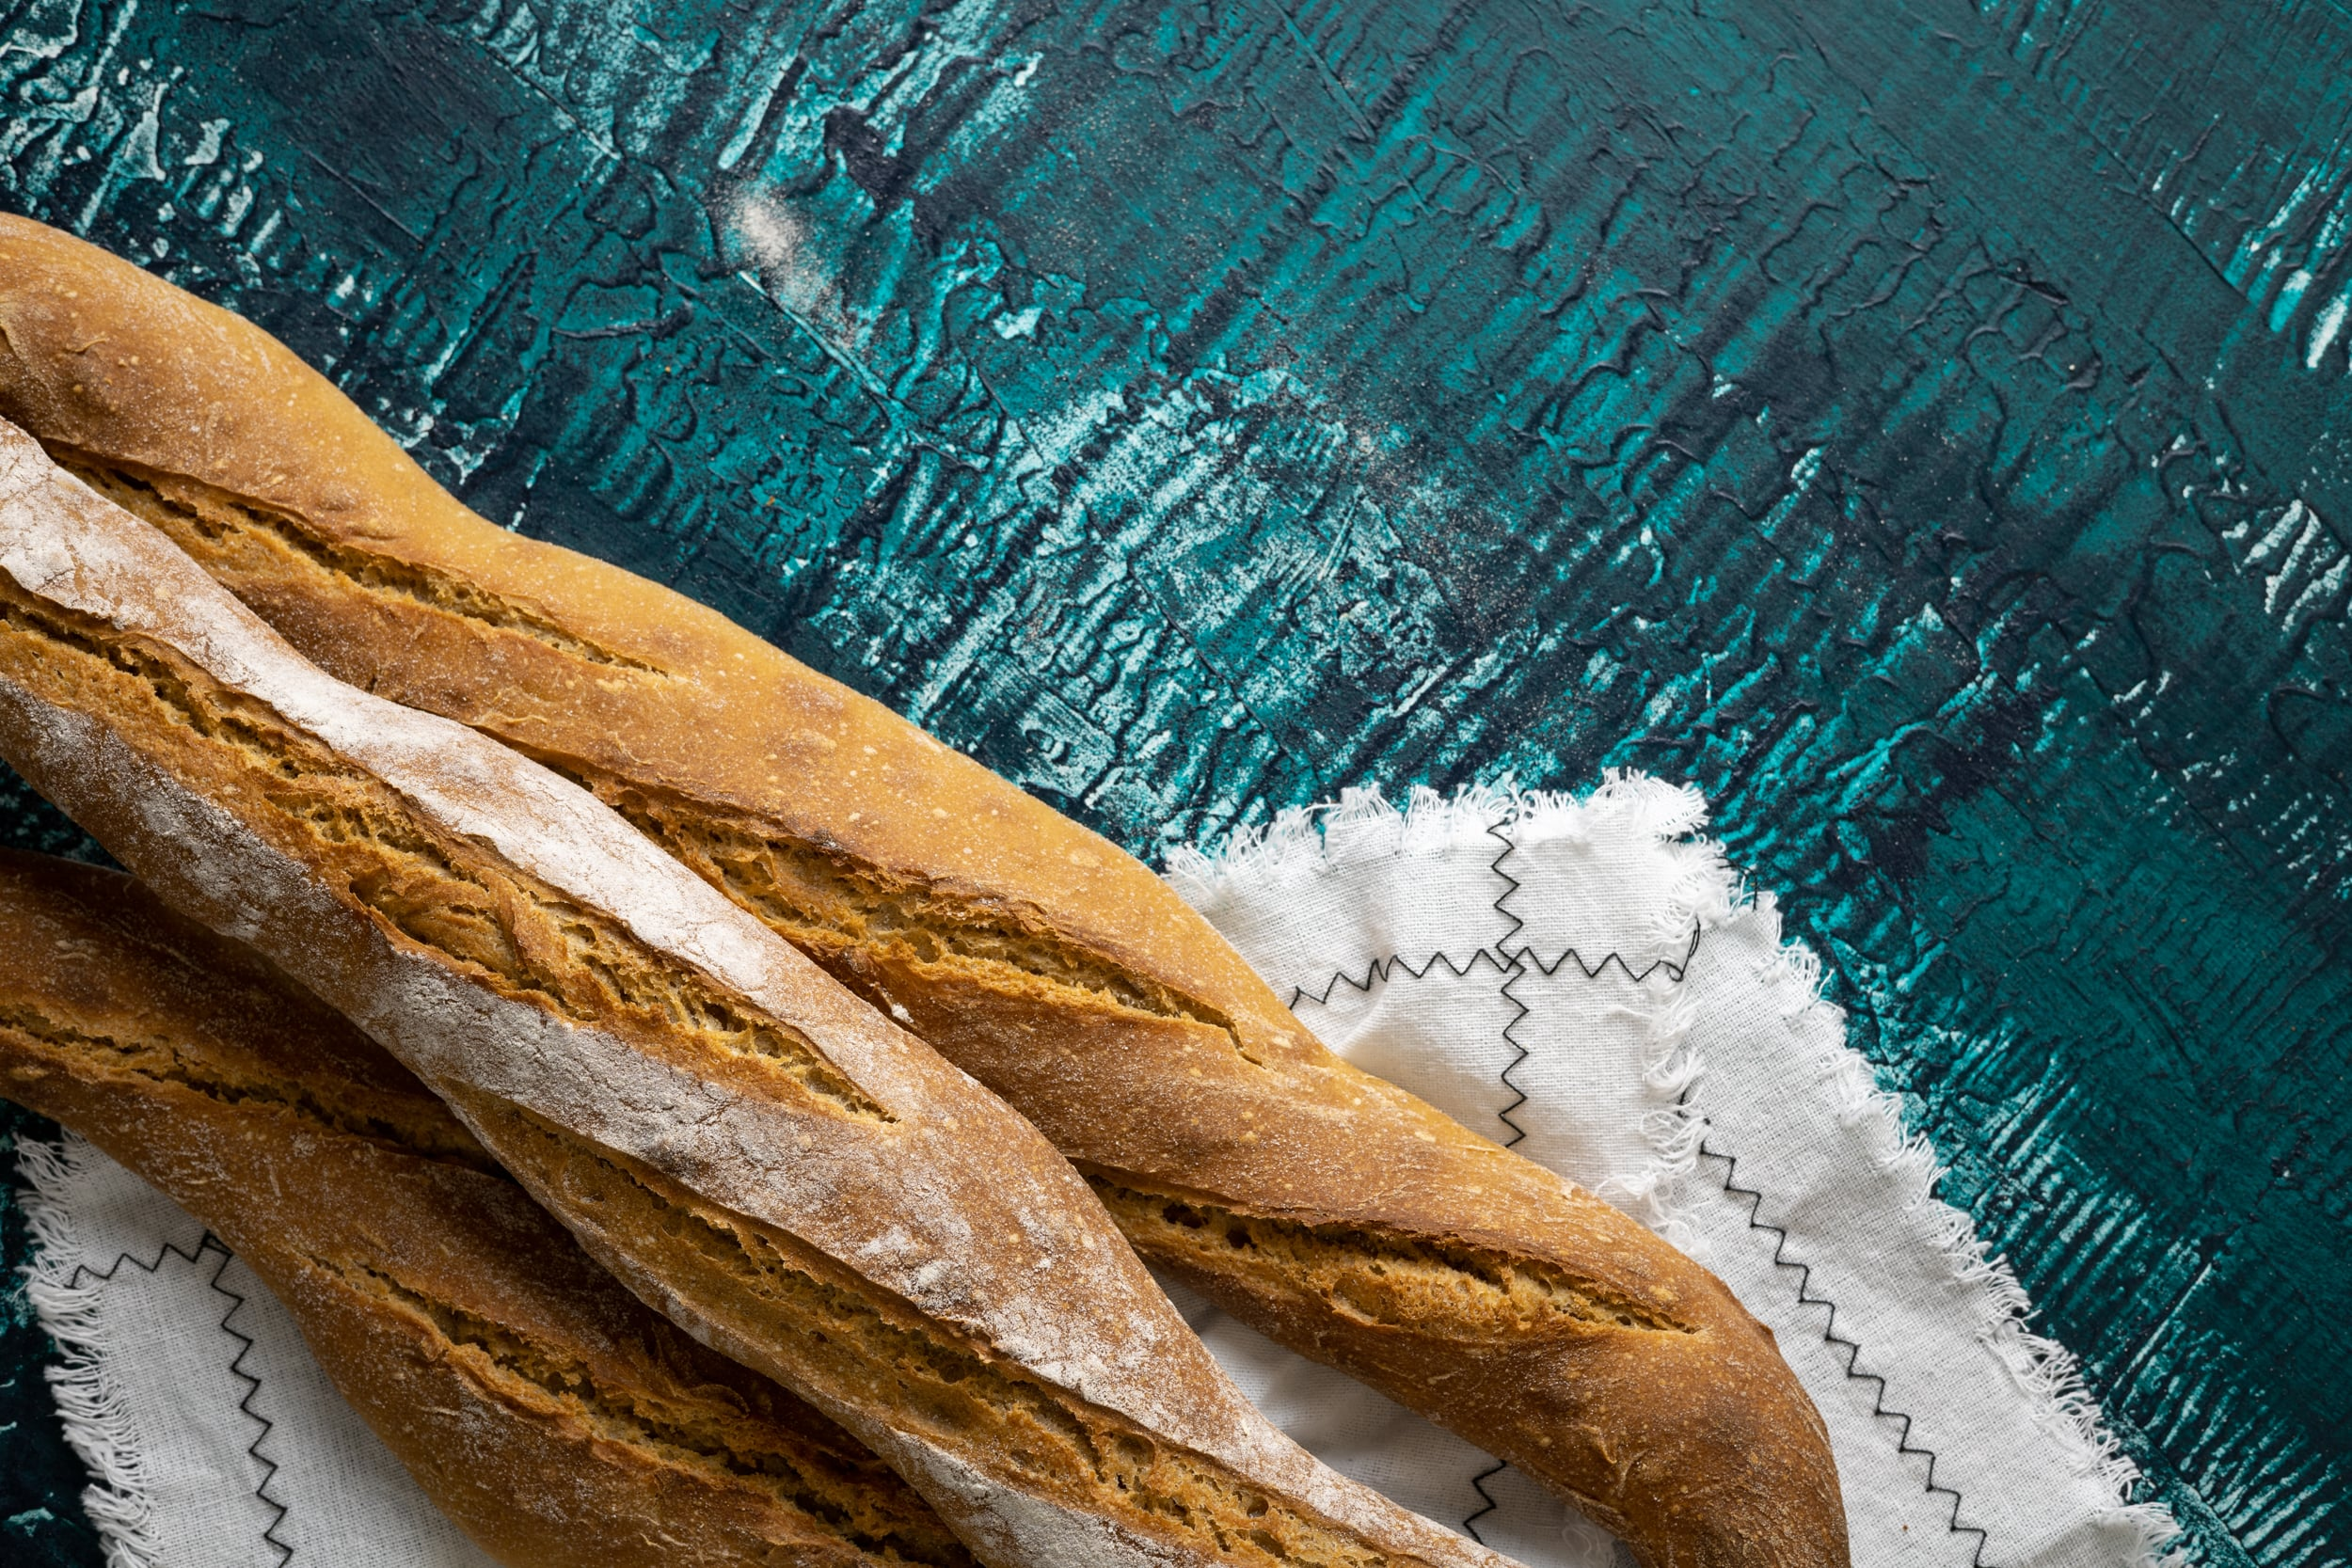 A few baguettes and a white cloth on a blue-green background